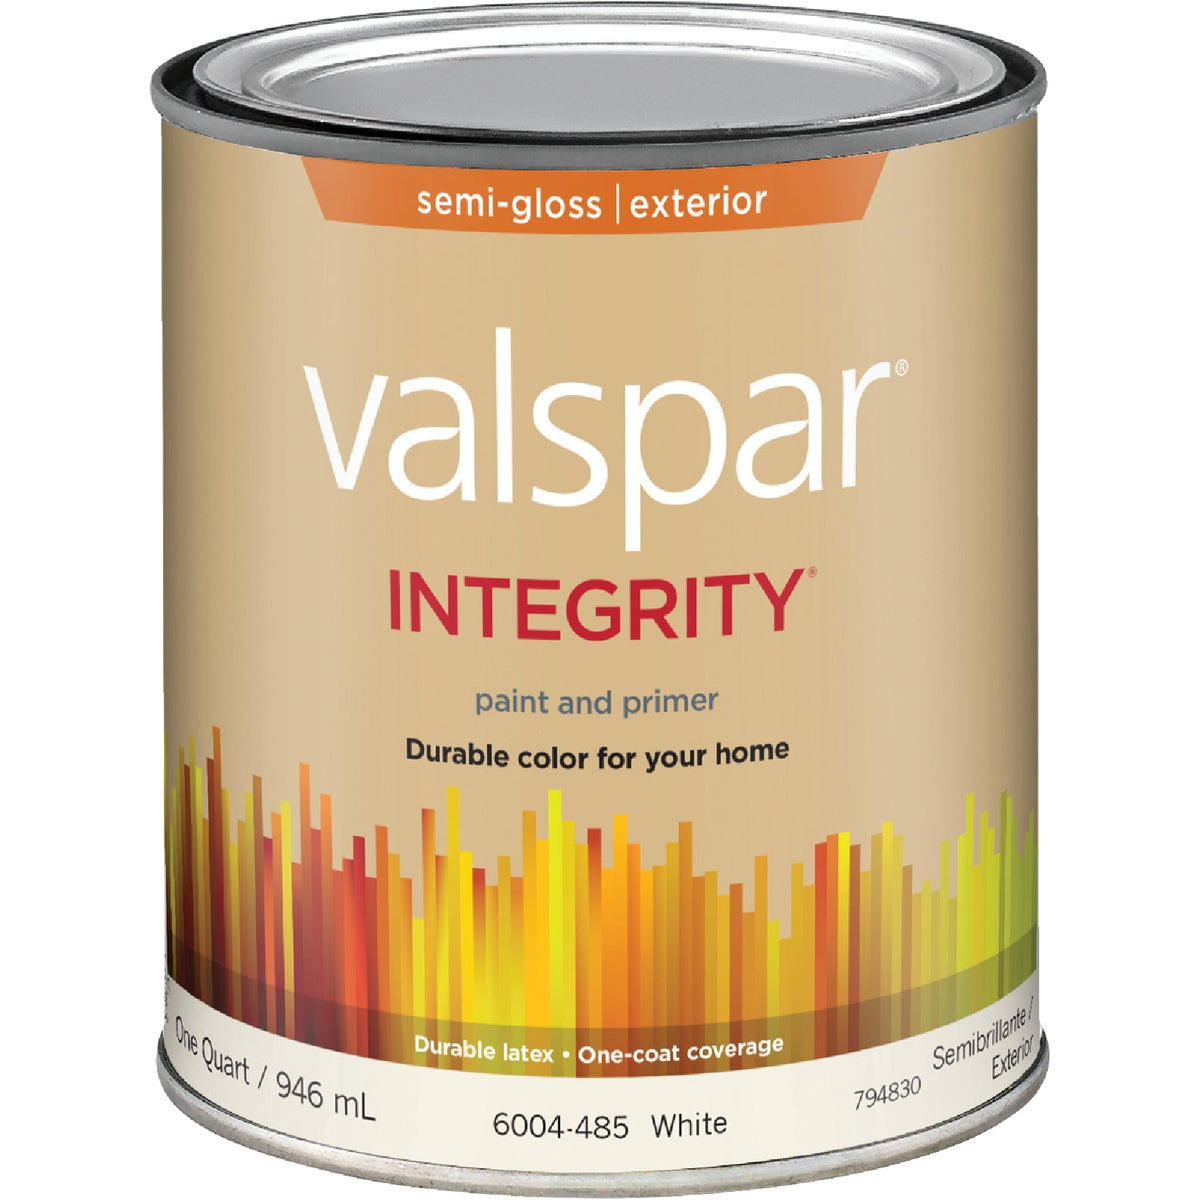 EXT S/G WHITE PAINT - 004.6004485.005 by Valspar Corp